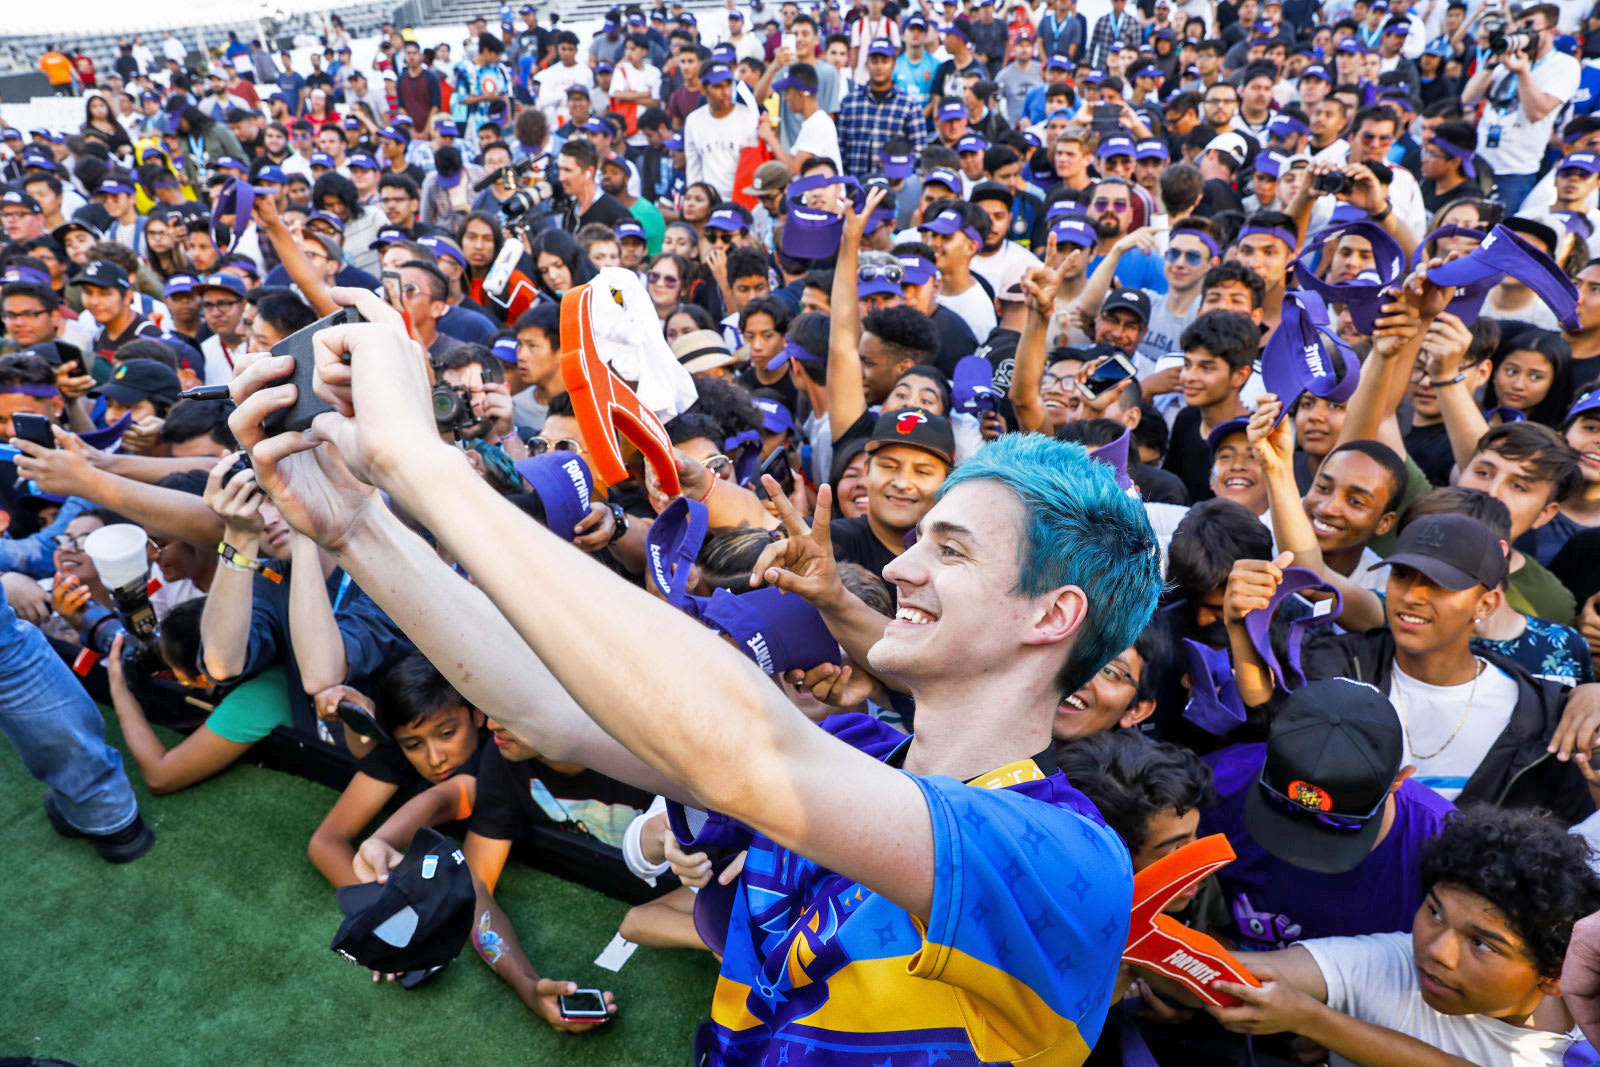 Fortnite' streamer Ninja is the first to 10 million Twitch